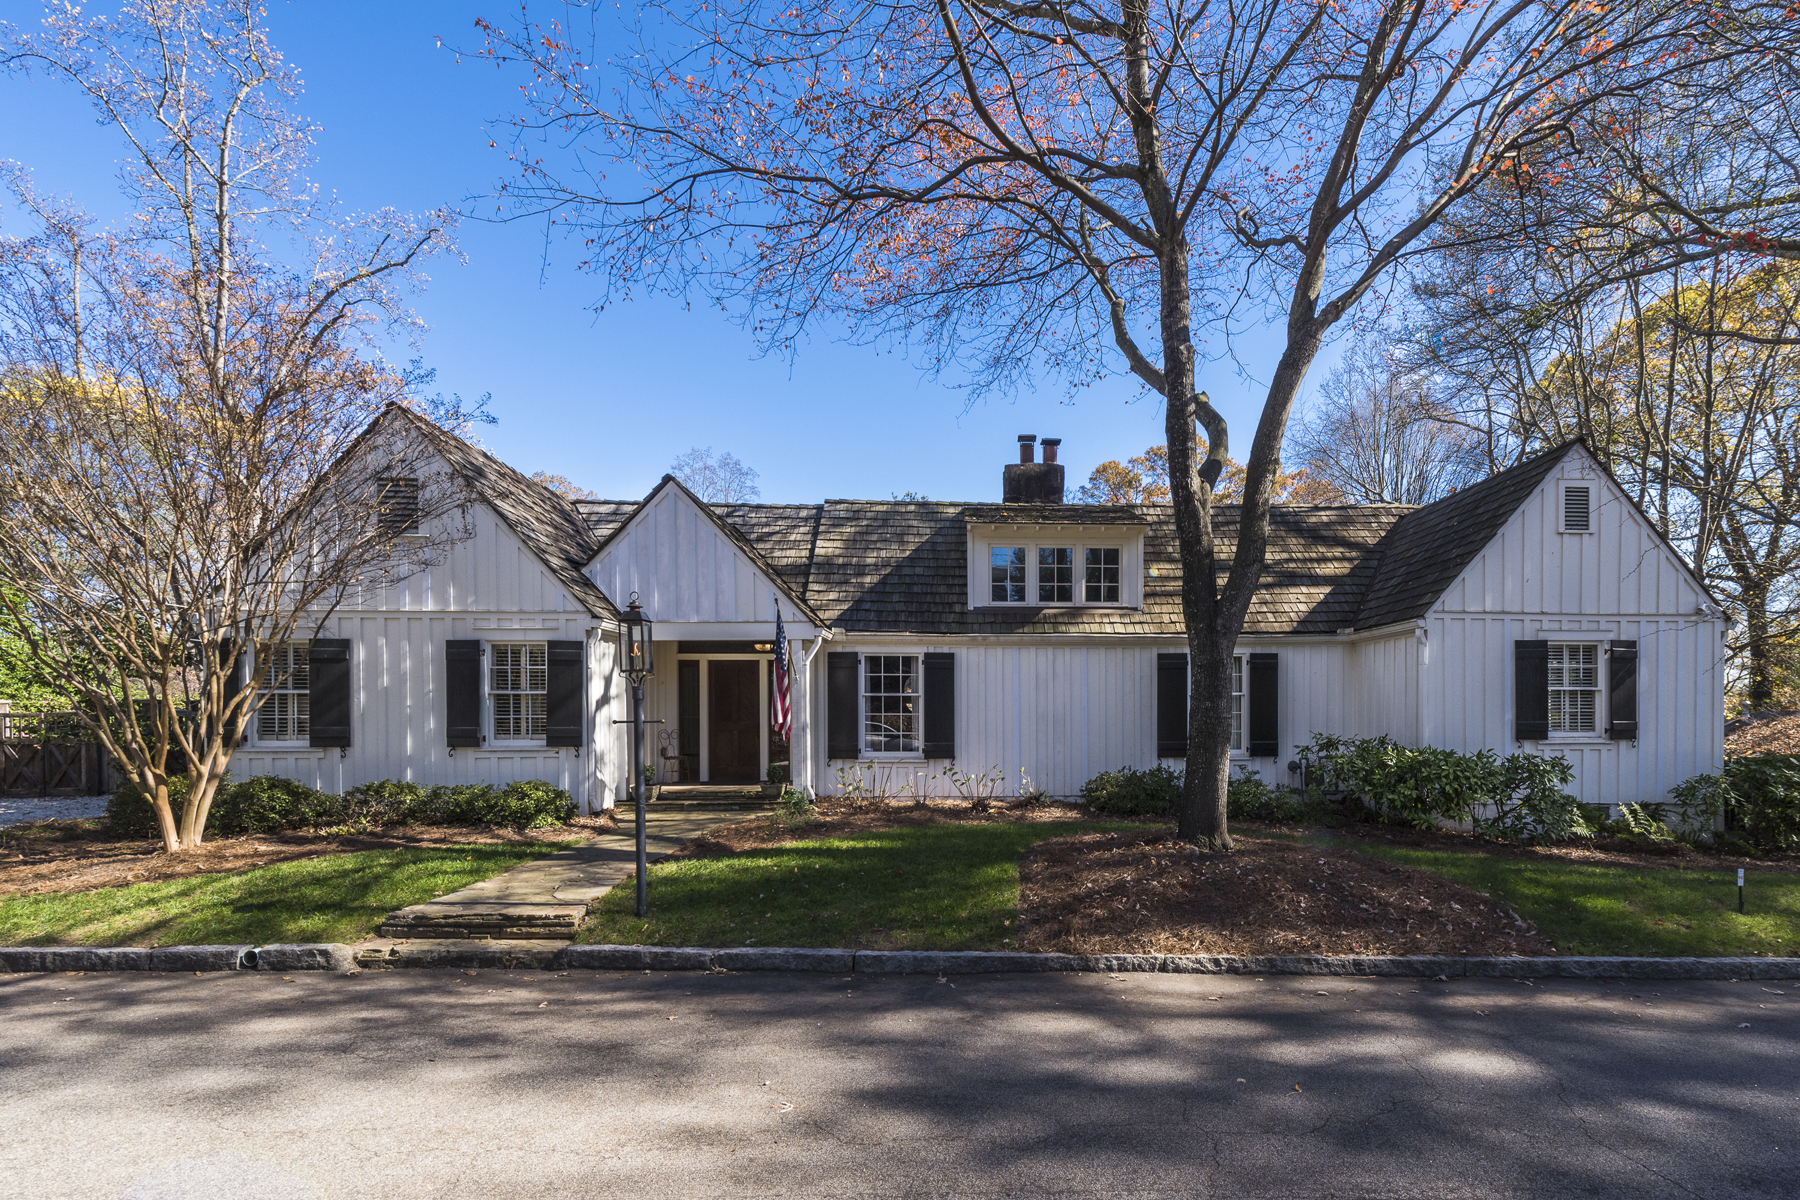 Single Family Home for Sale at Charming Beautifully Renovated Former Hunting Lodge 2535 Forrest Way NE Garden Hills, Atlanta, Georgia, 30305 United States